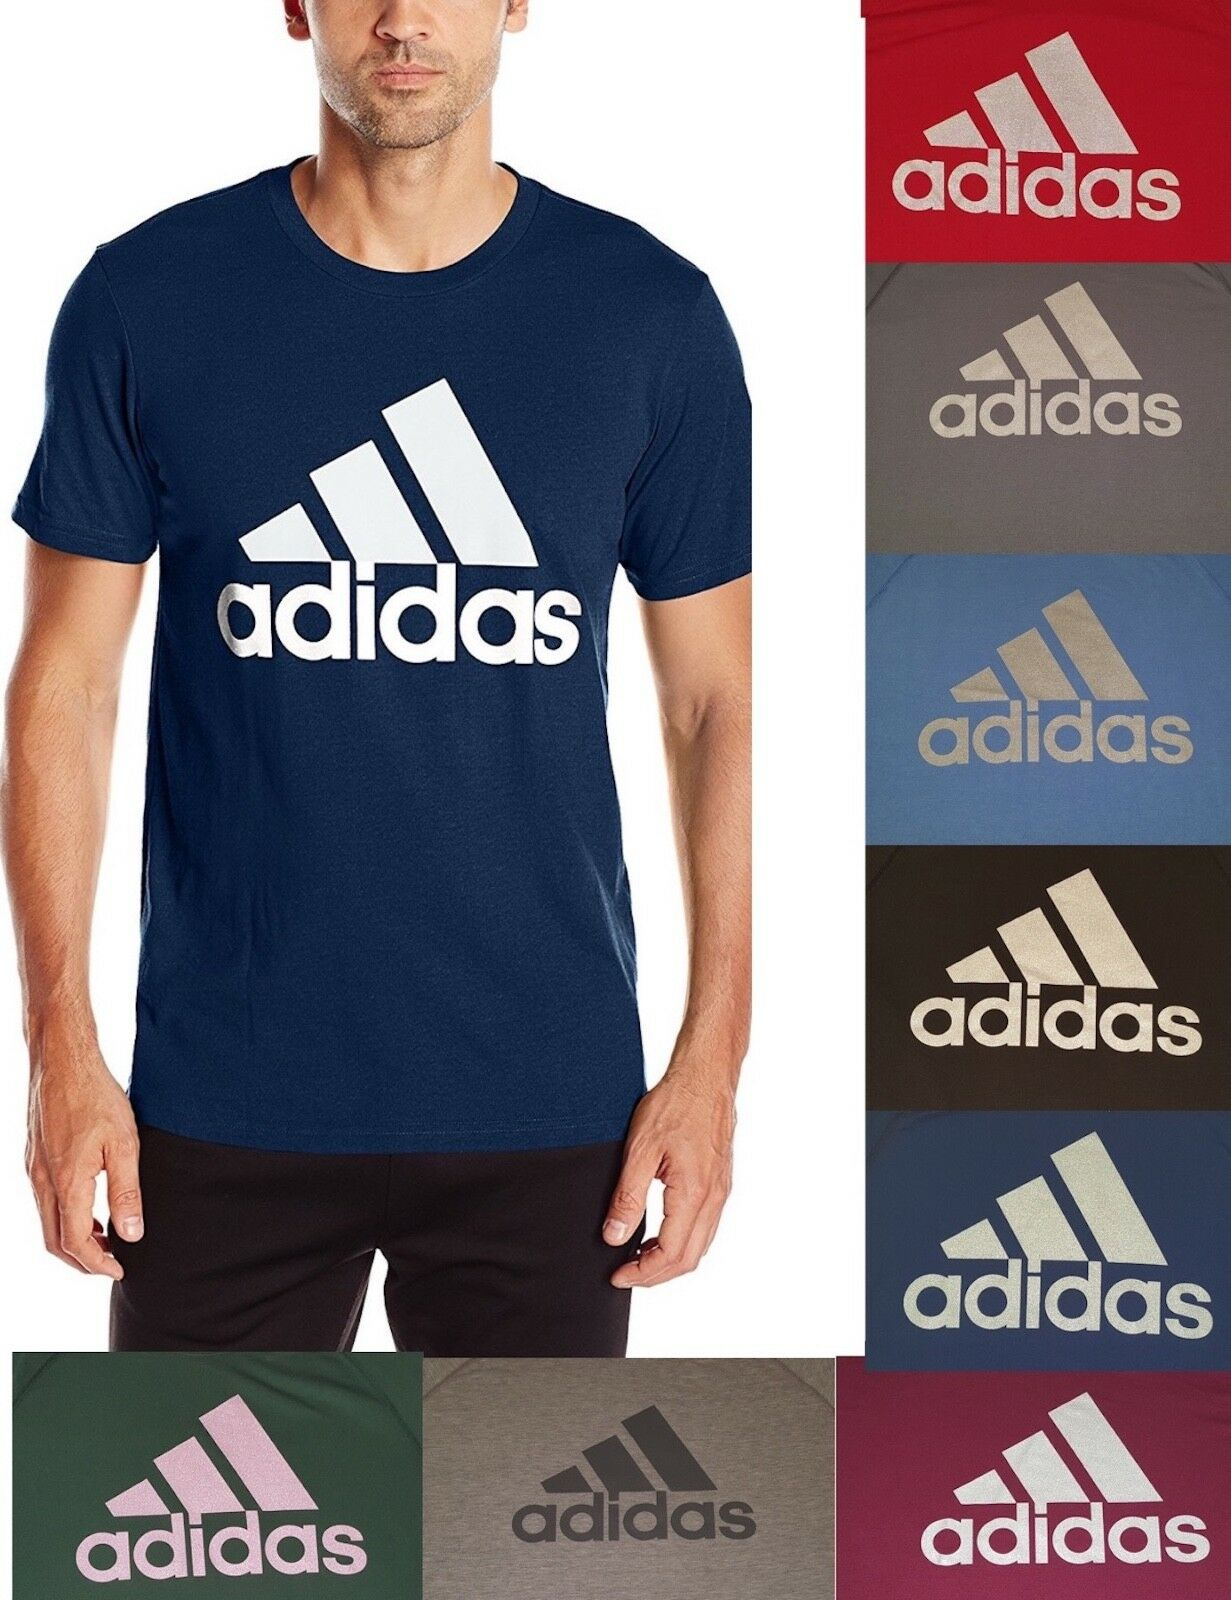 Adidas Mens Tee Performance Ultimate T-Shirt - Many Colors S